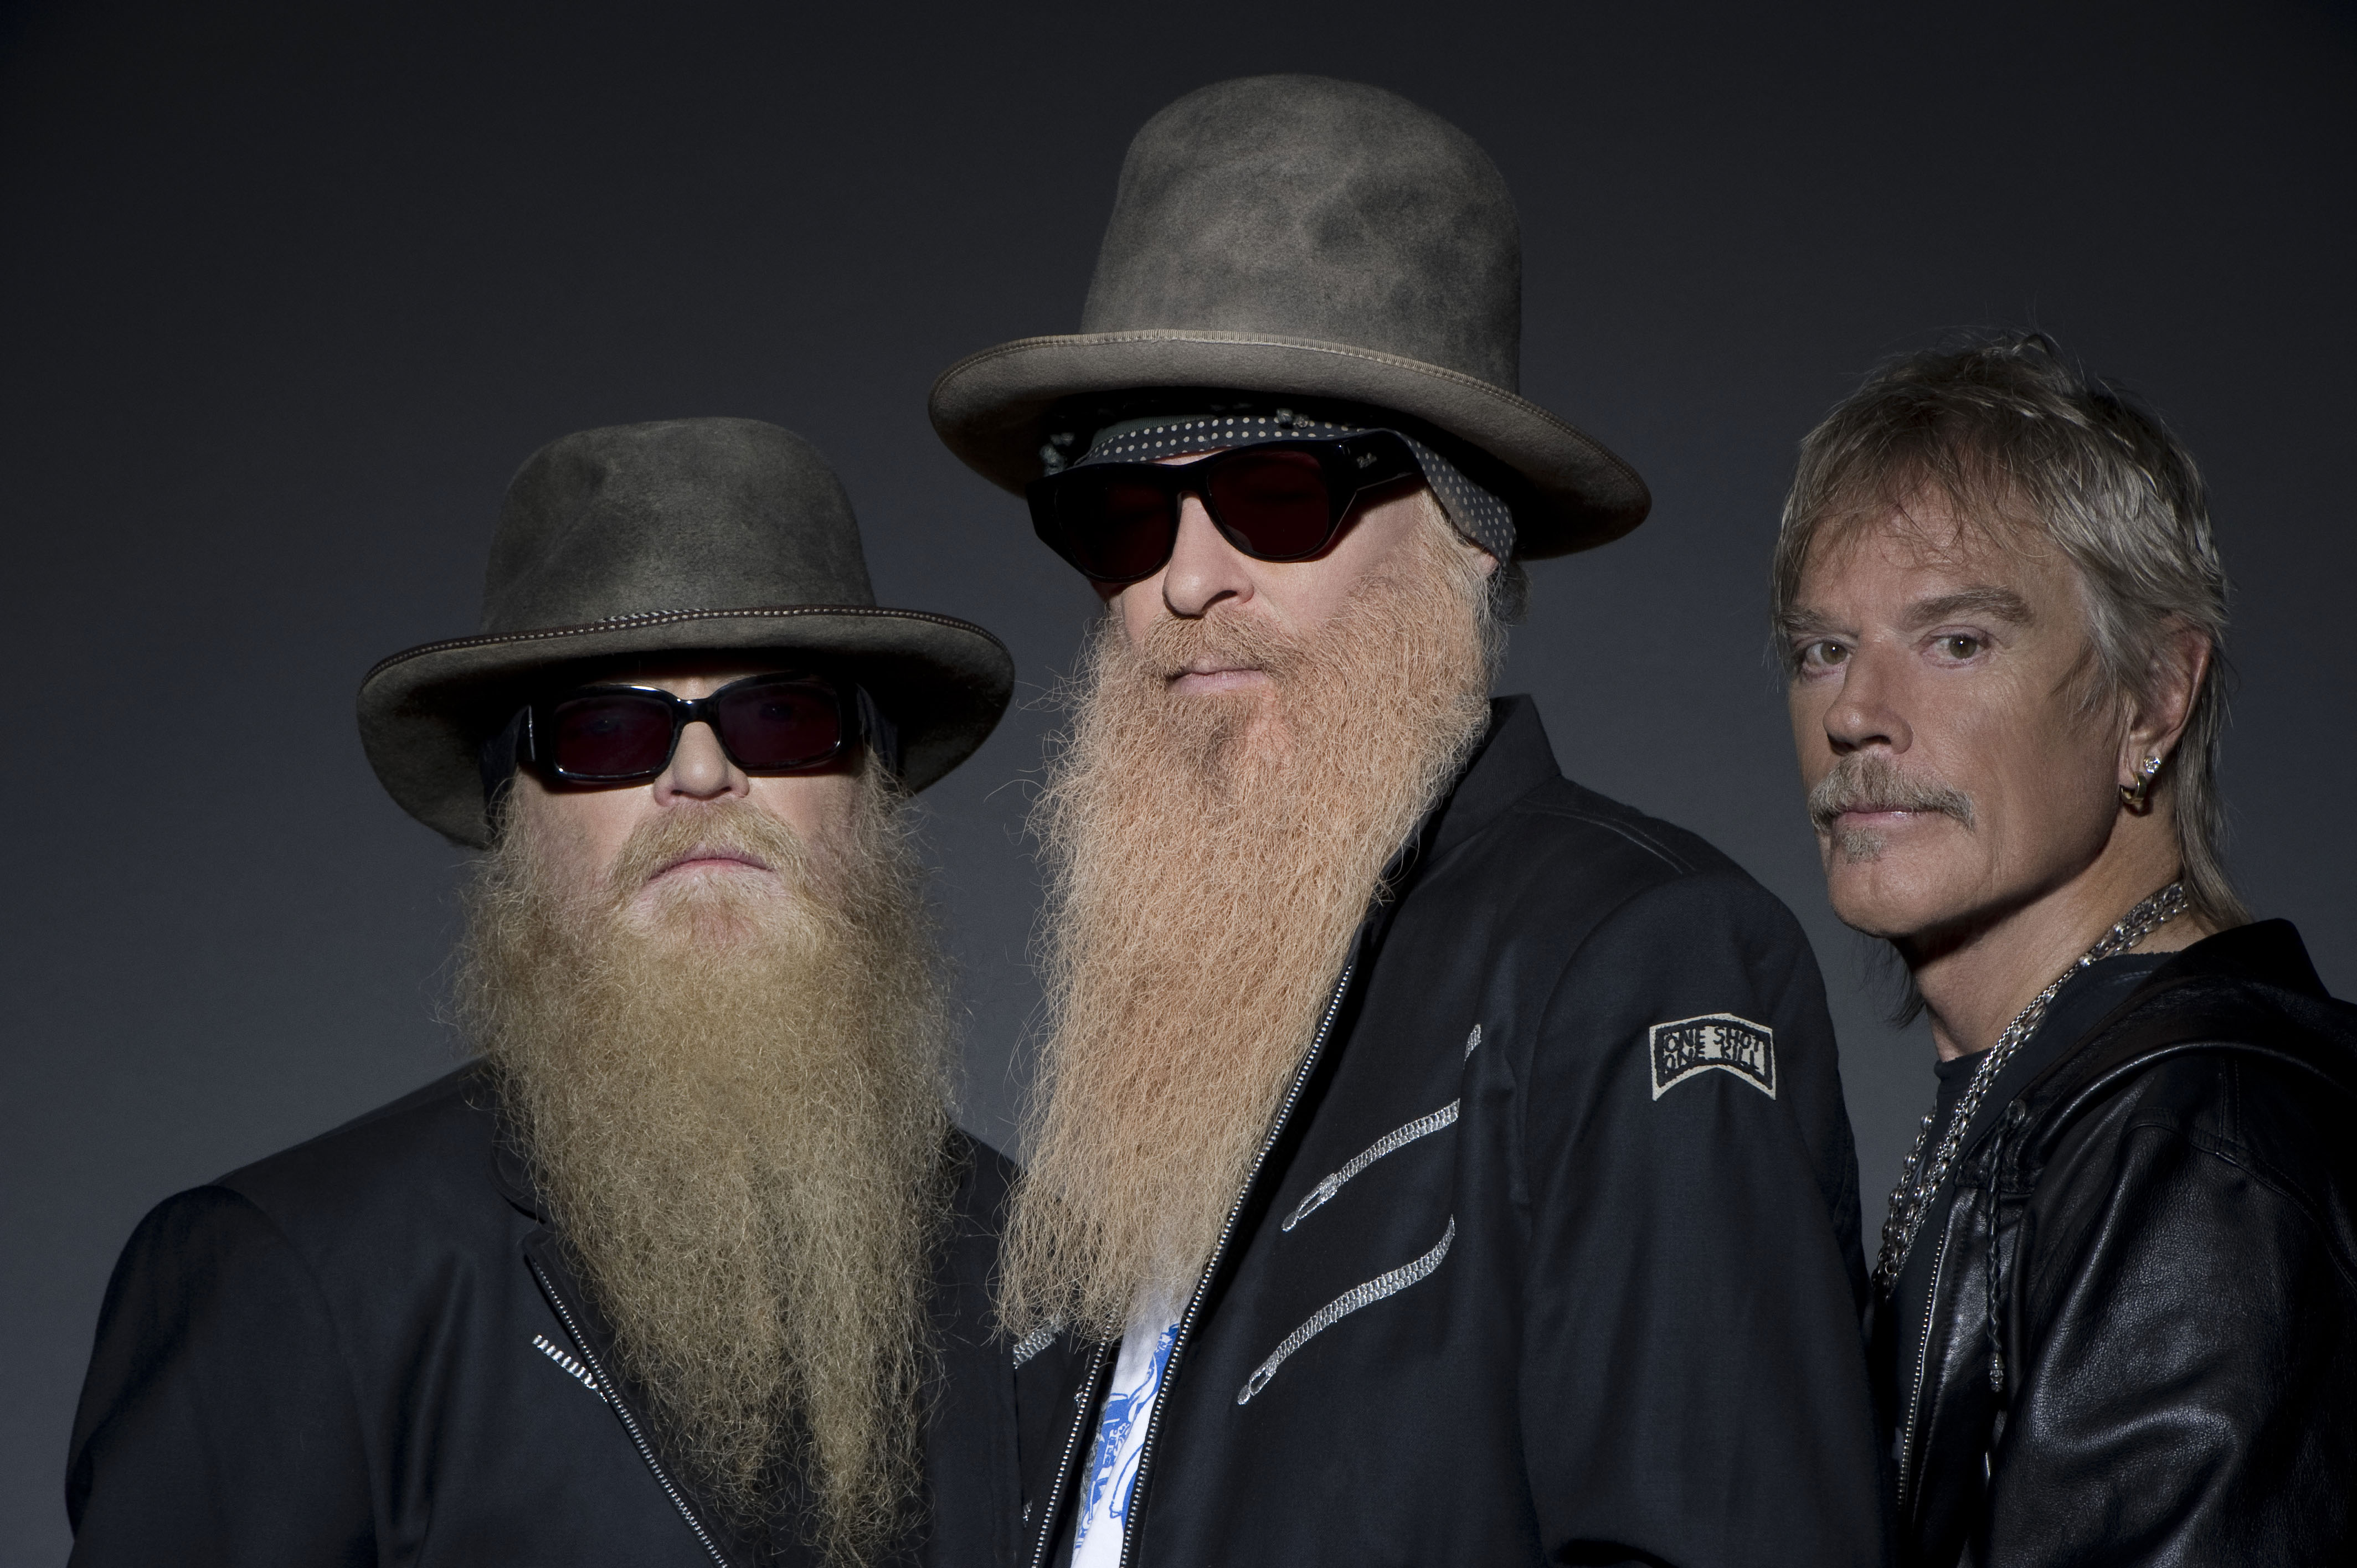 ZZ Top will be joined by Gregg Allman at Darien Lake PAC on Aug 23 (Suretone).